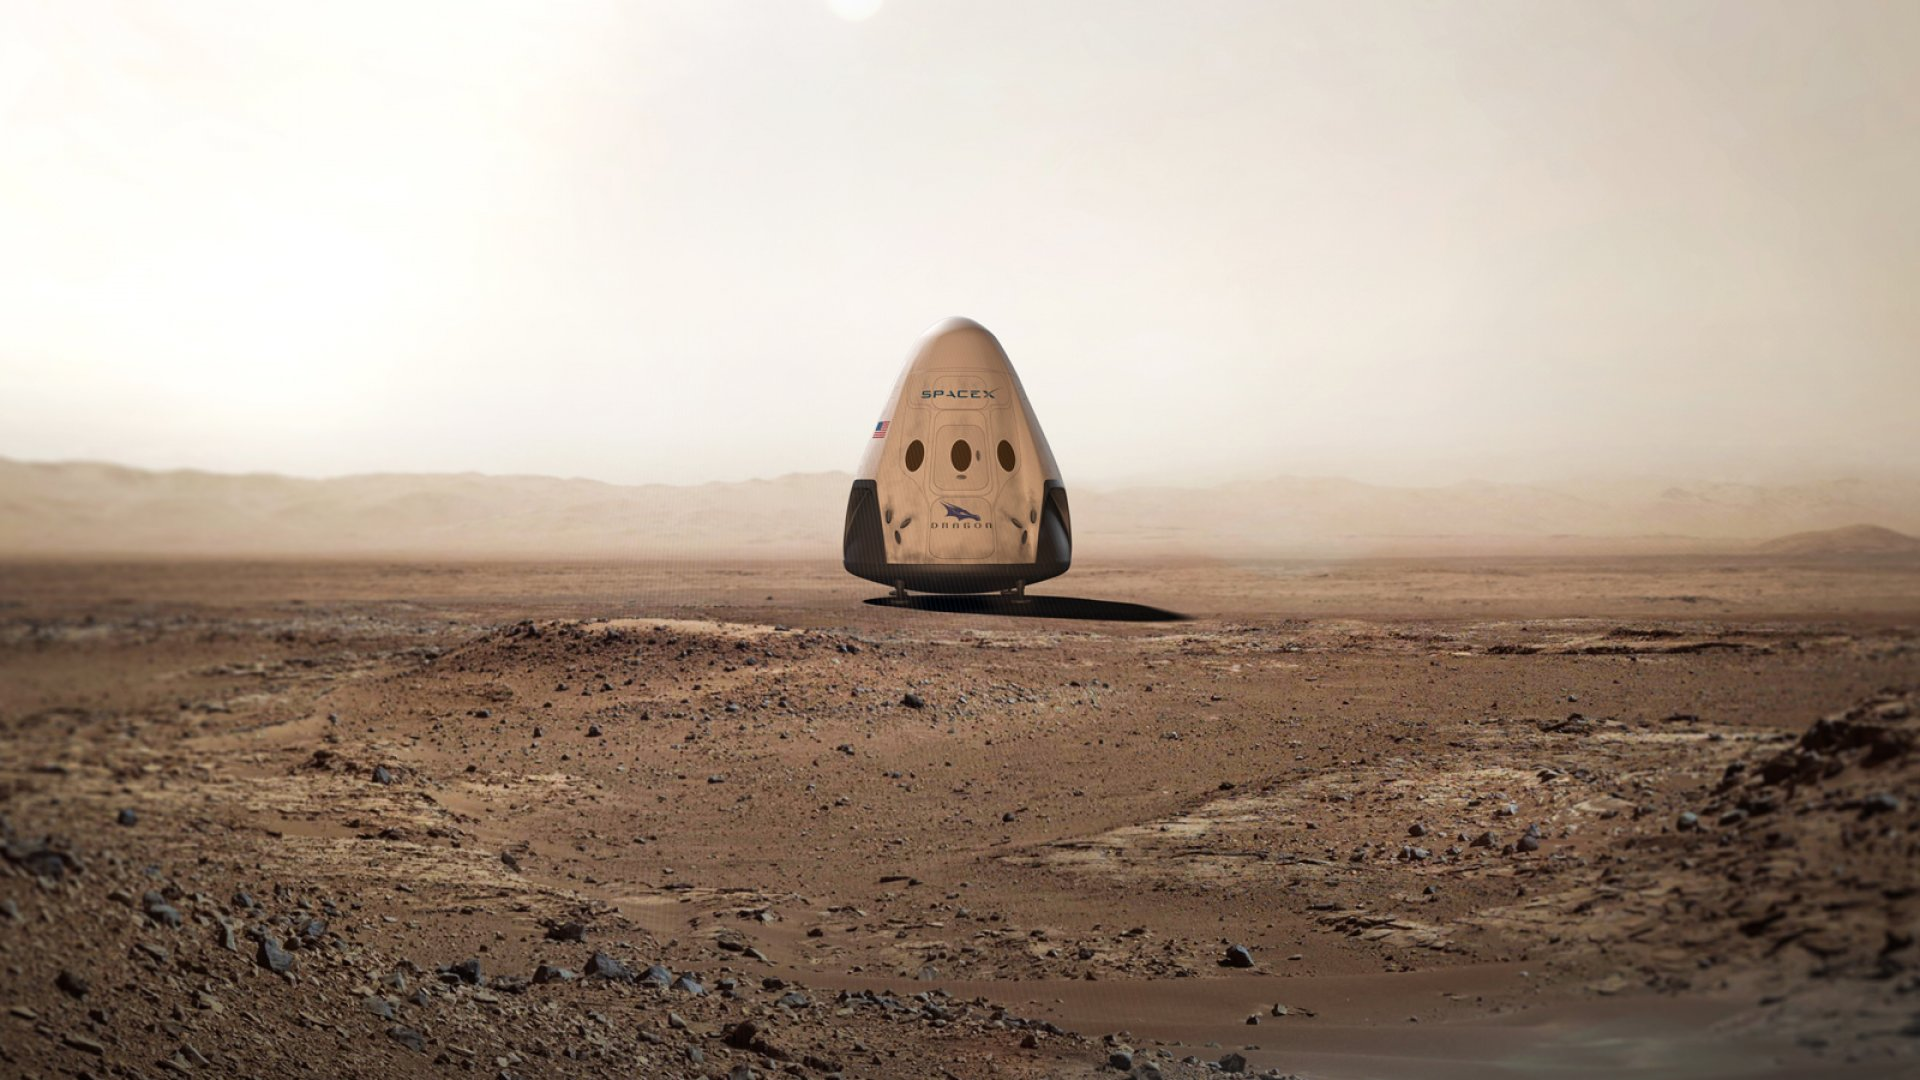 SpaceX and NASA are hoping to send the Red Dragon 2 capsule to the Red Planet by 2018.